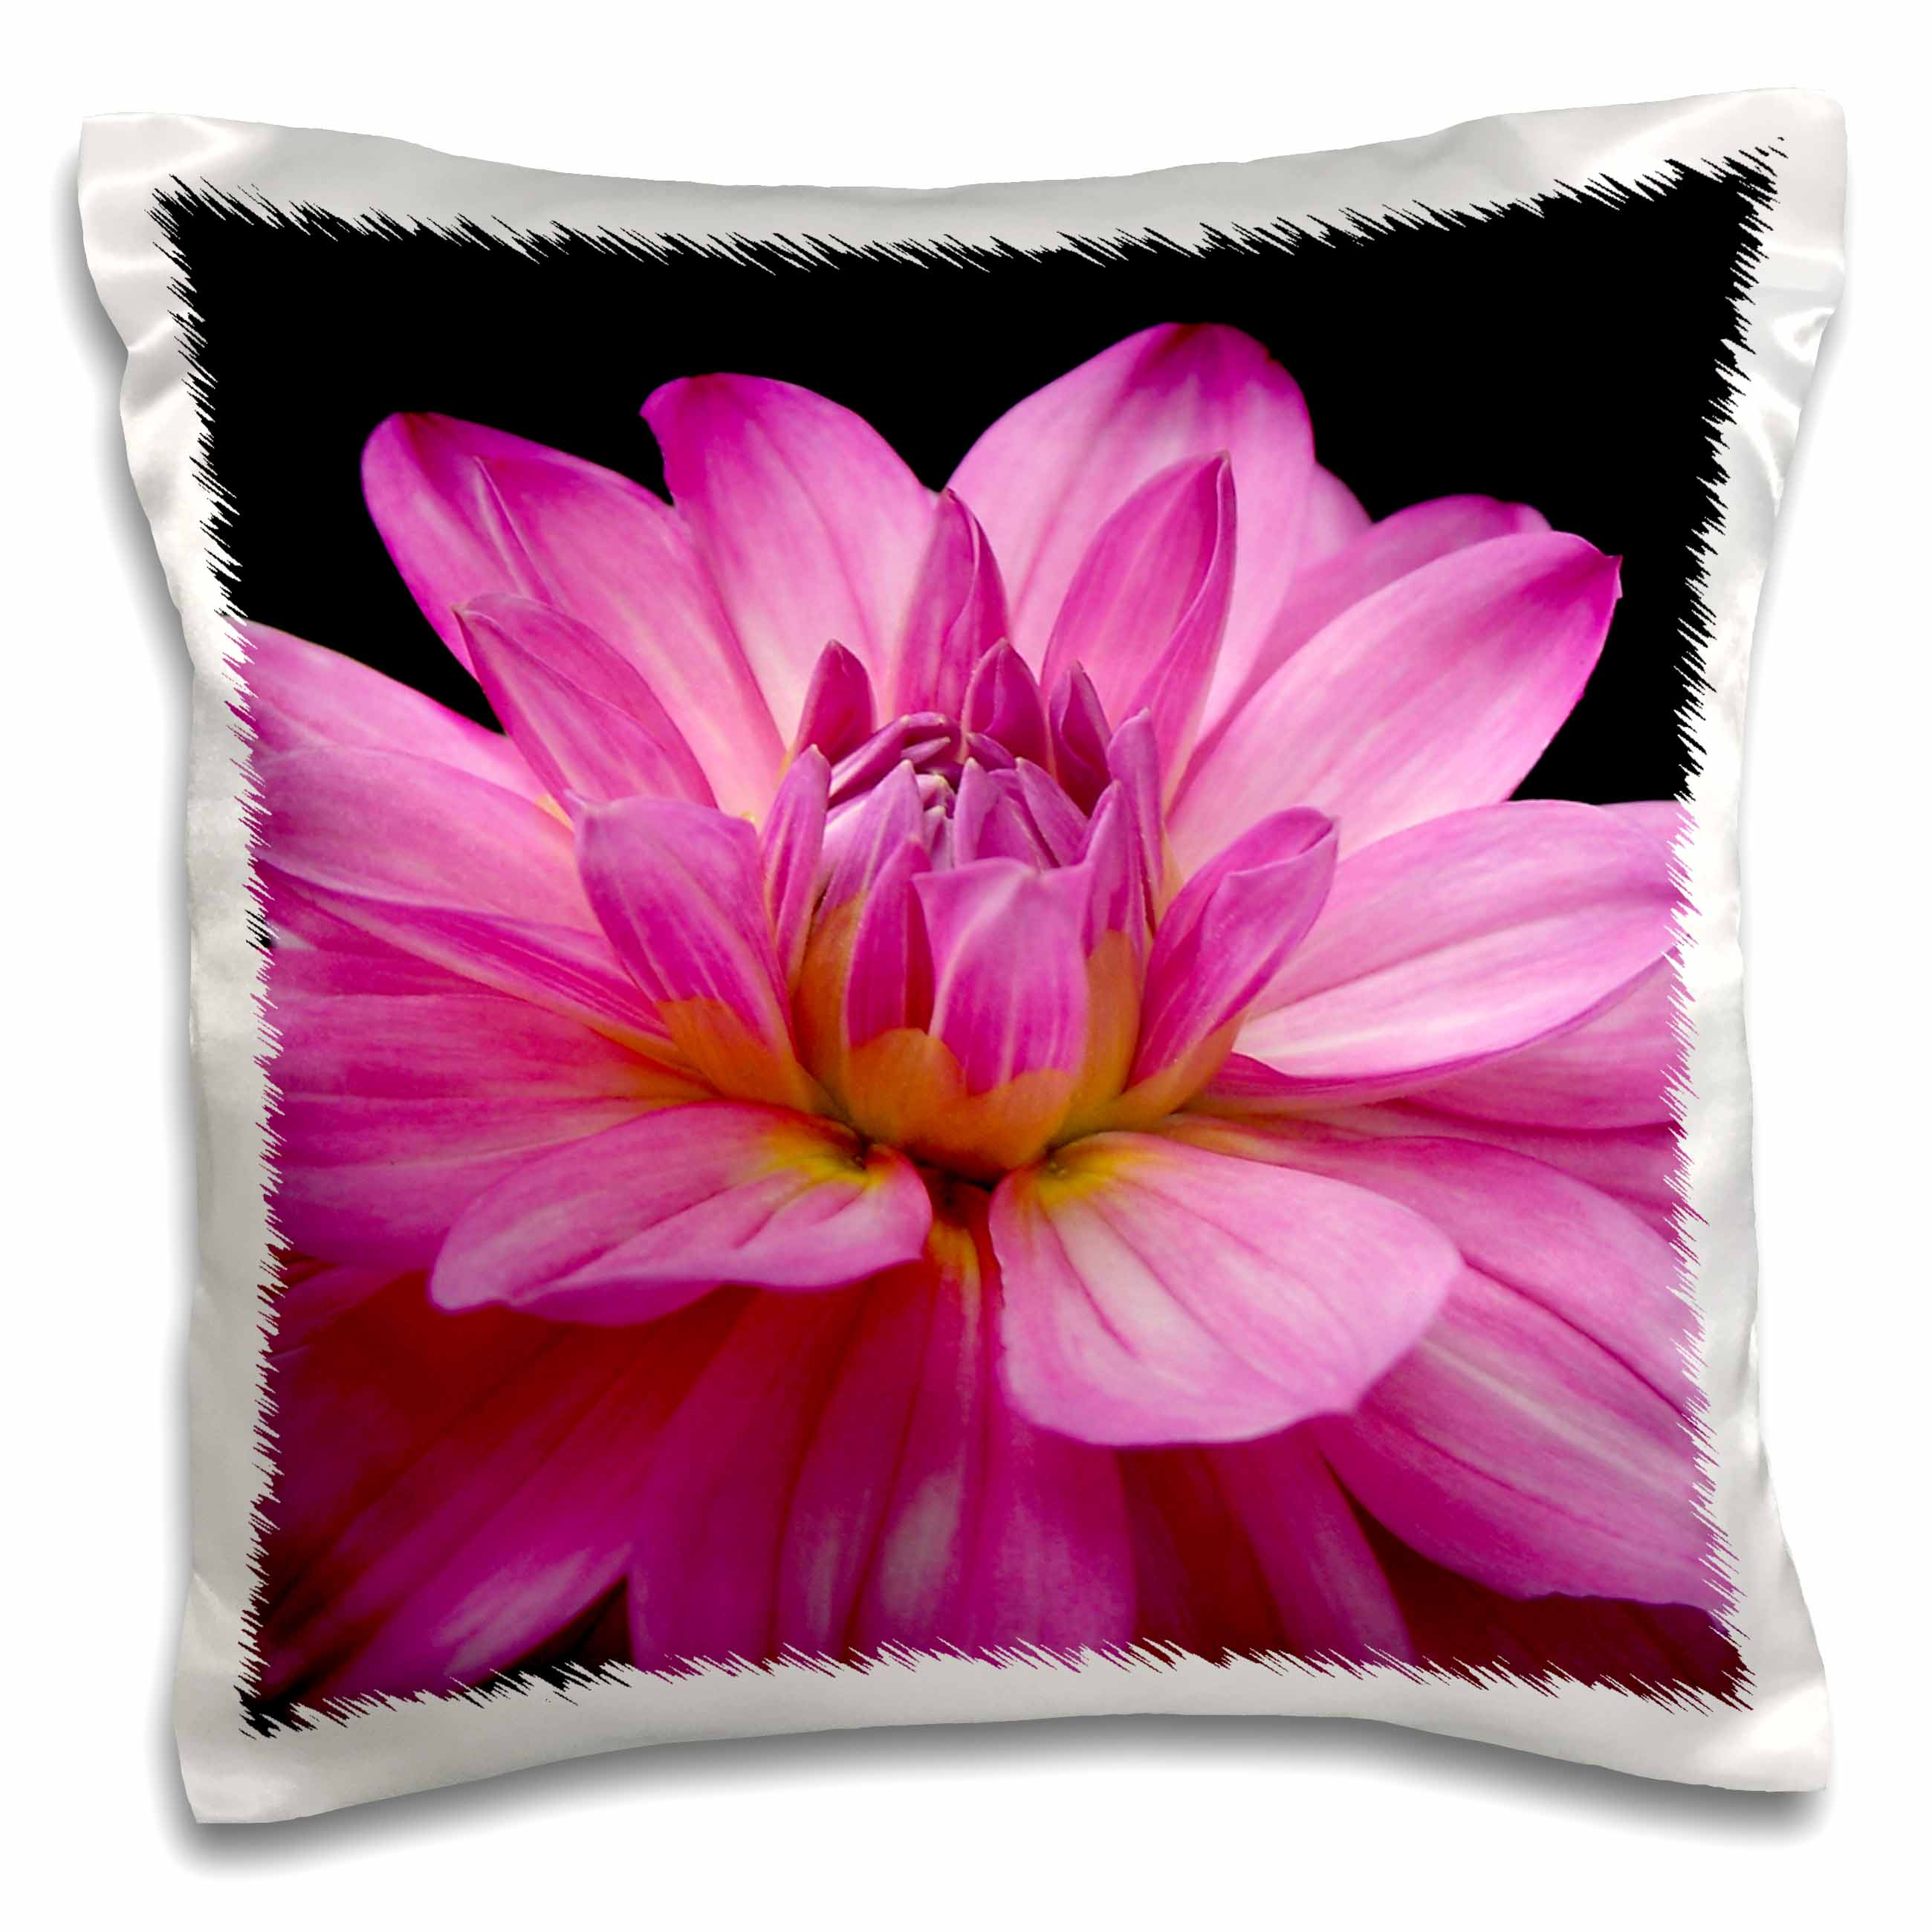 3dRose Pink Figurine Dahlia Flower, Pillow Case, 16 by 16-inch